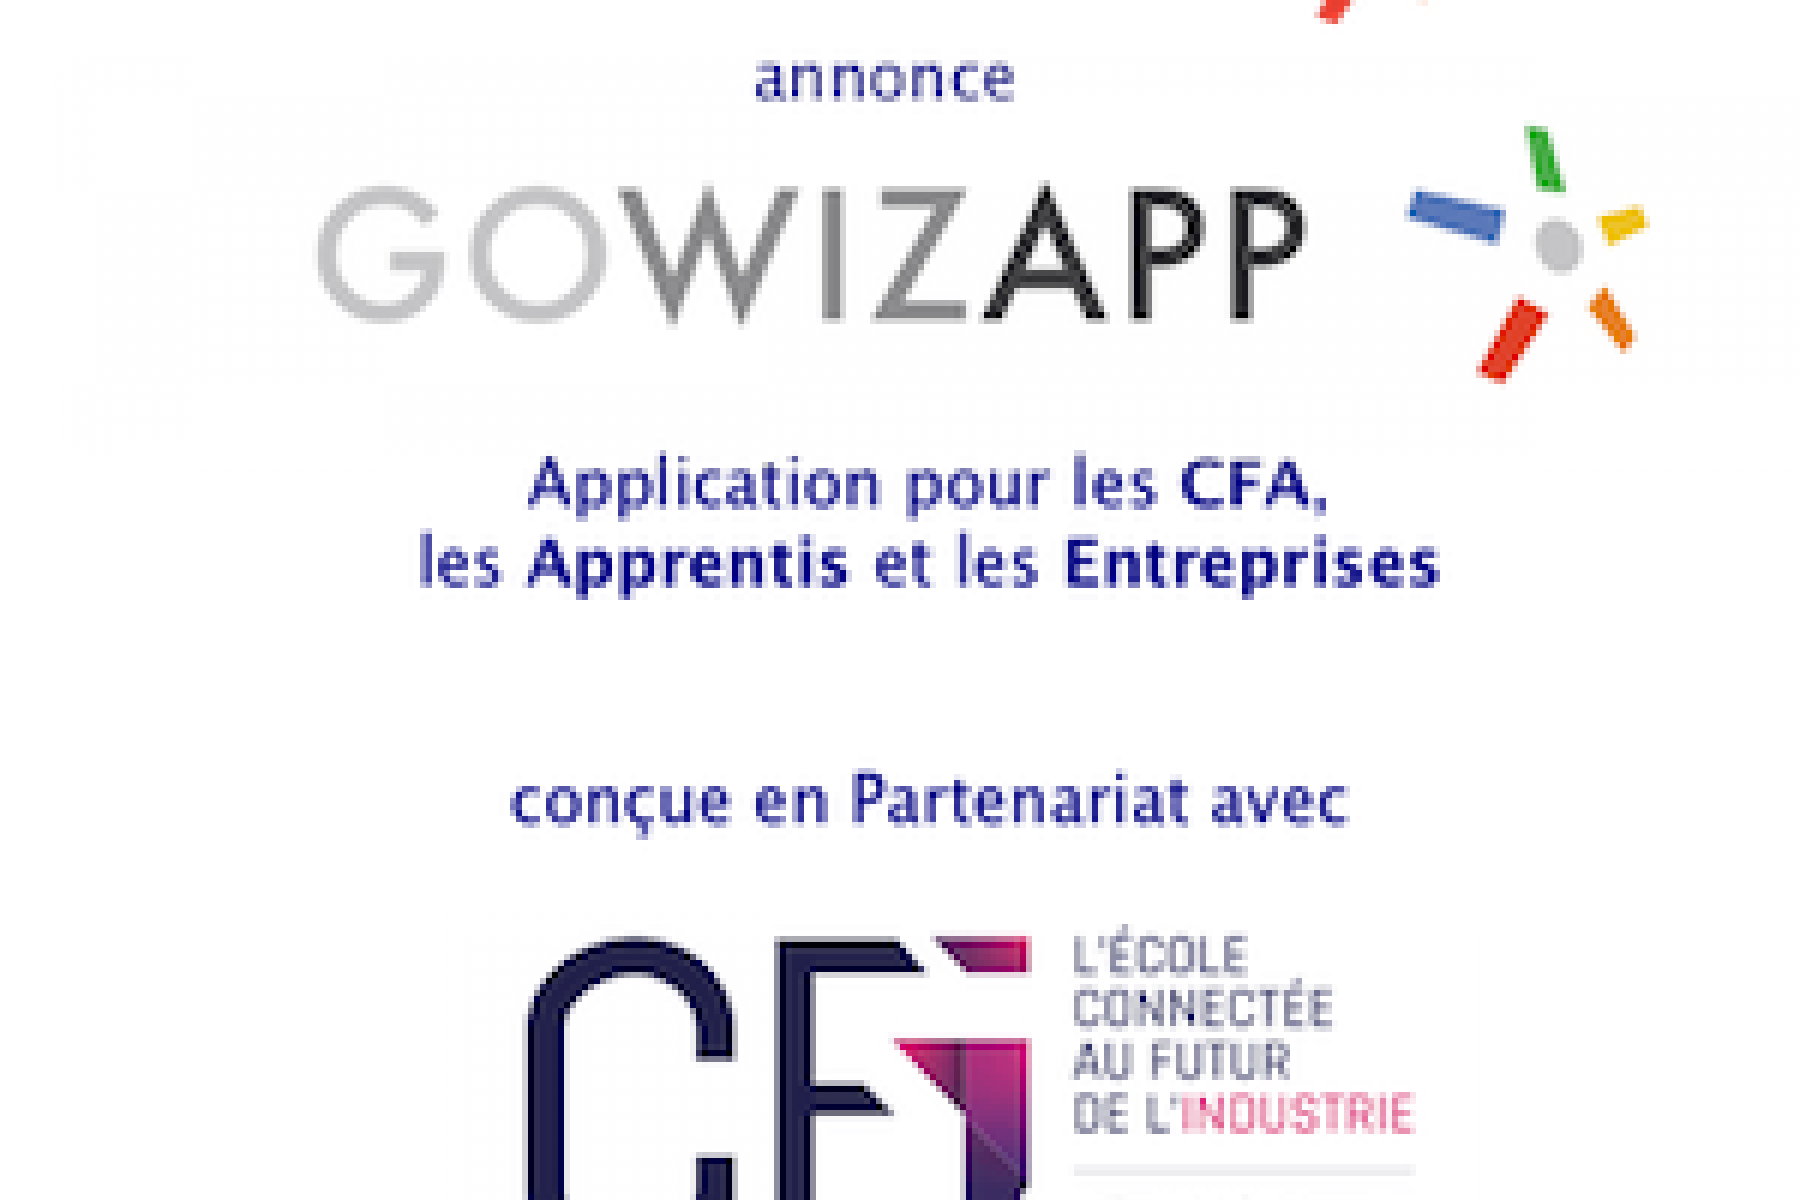 Annonce-GowizApp2